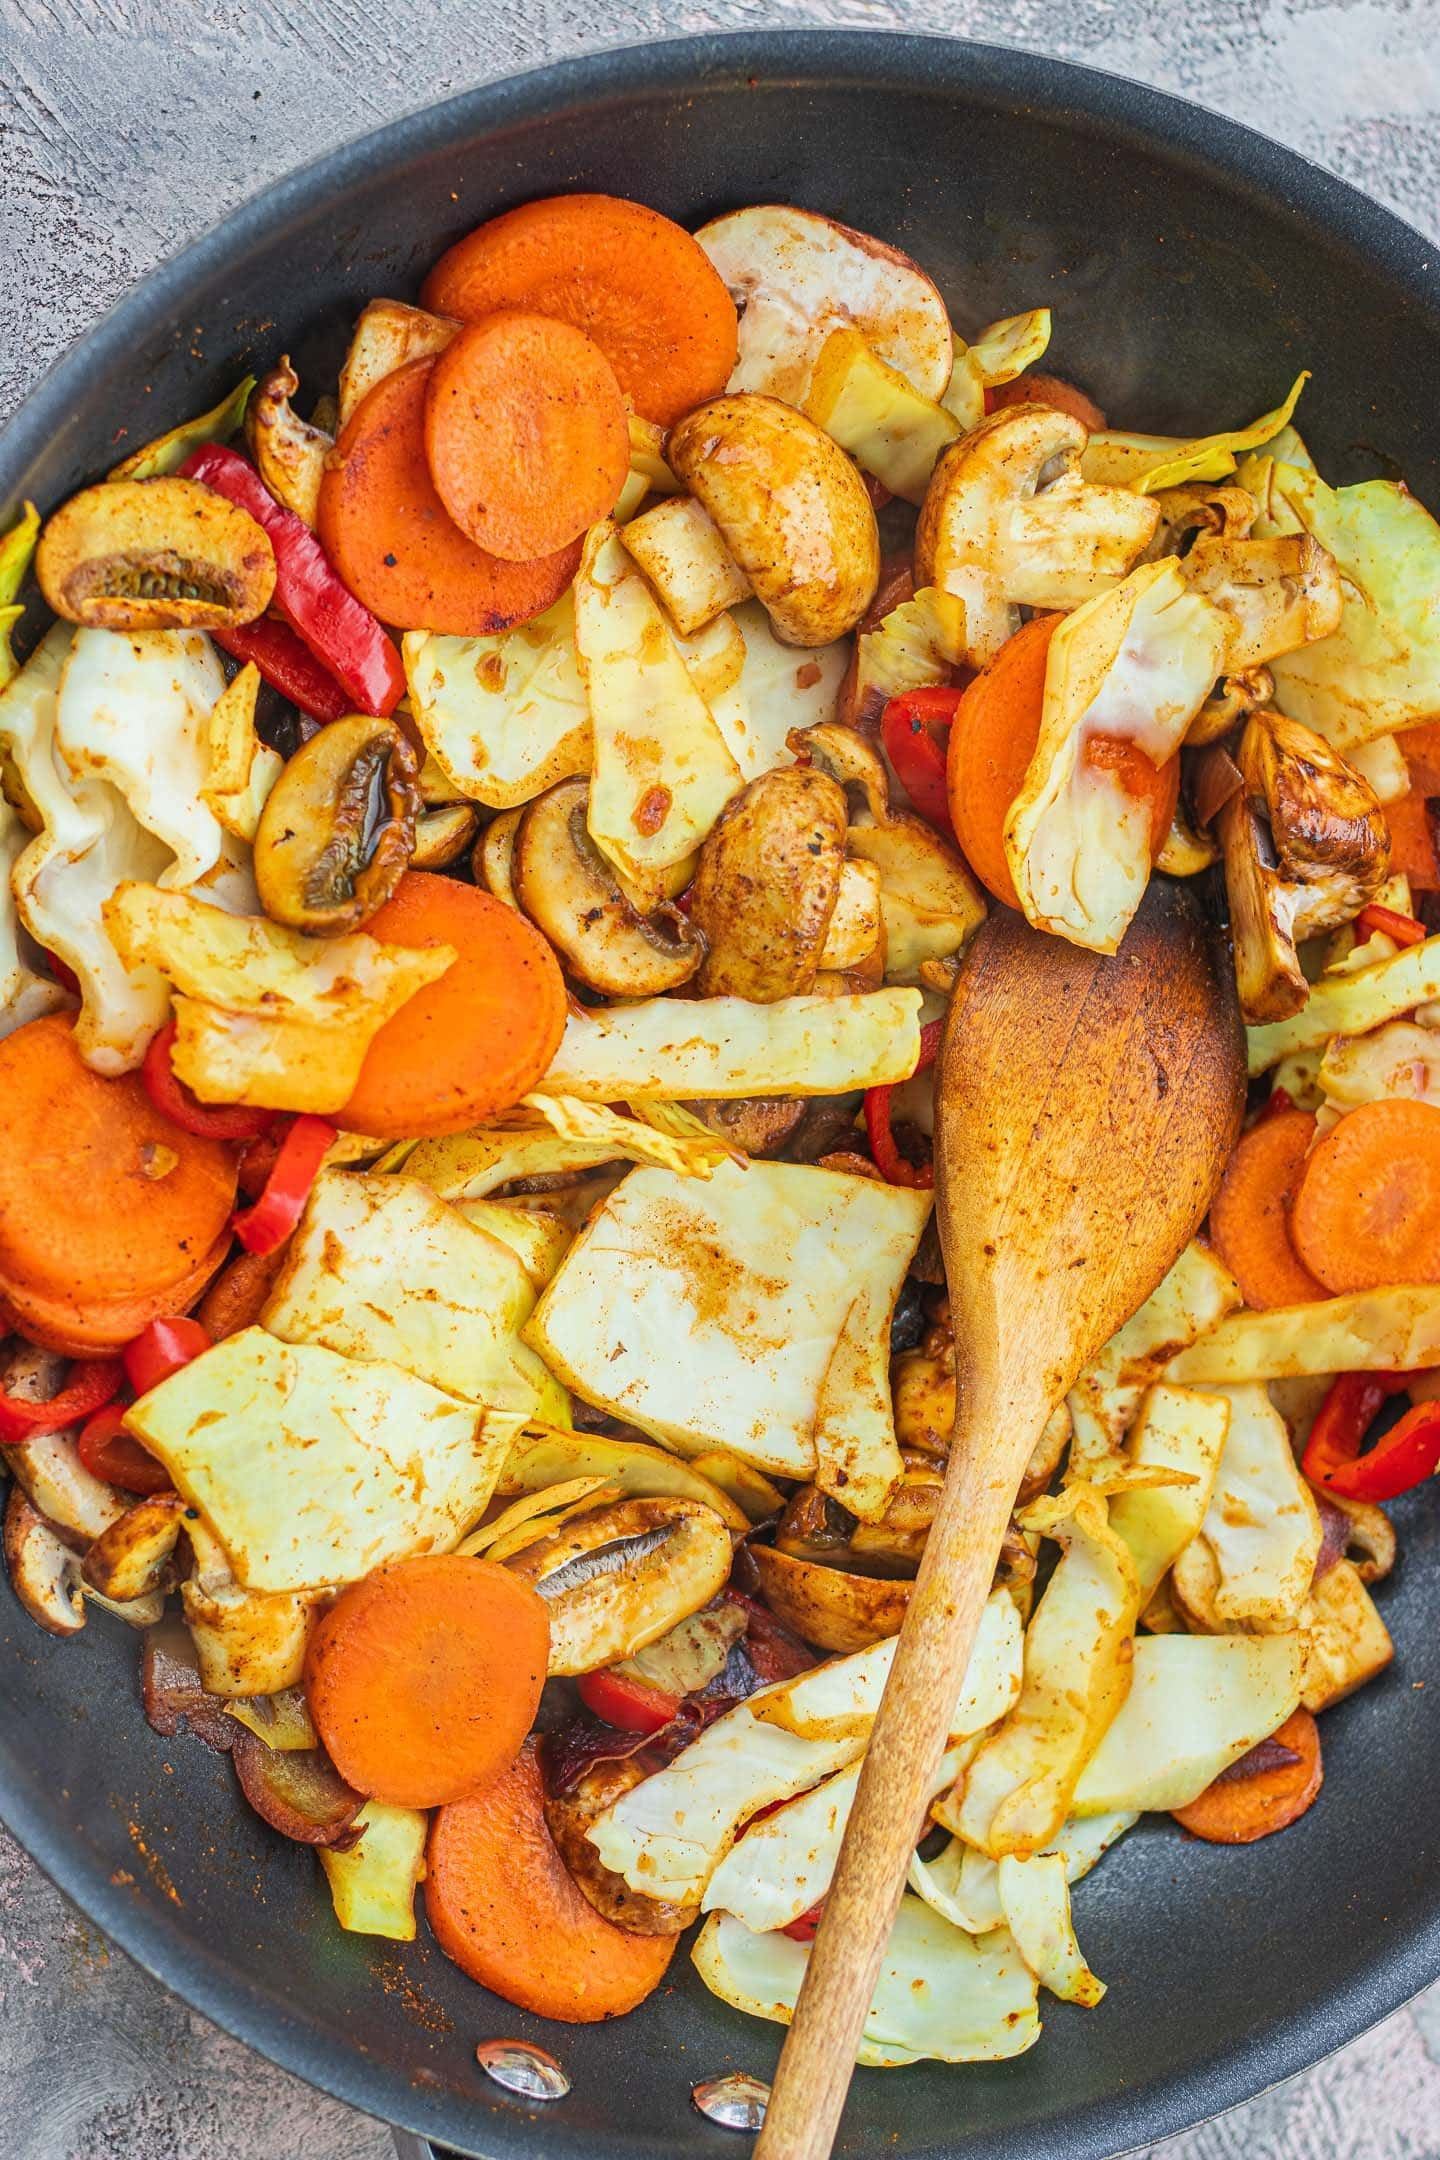 Cabbage, carrot, bell pepper and mushrooms in a frying pan